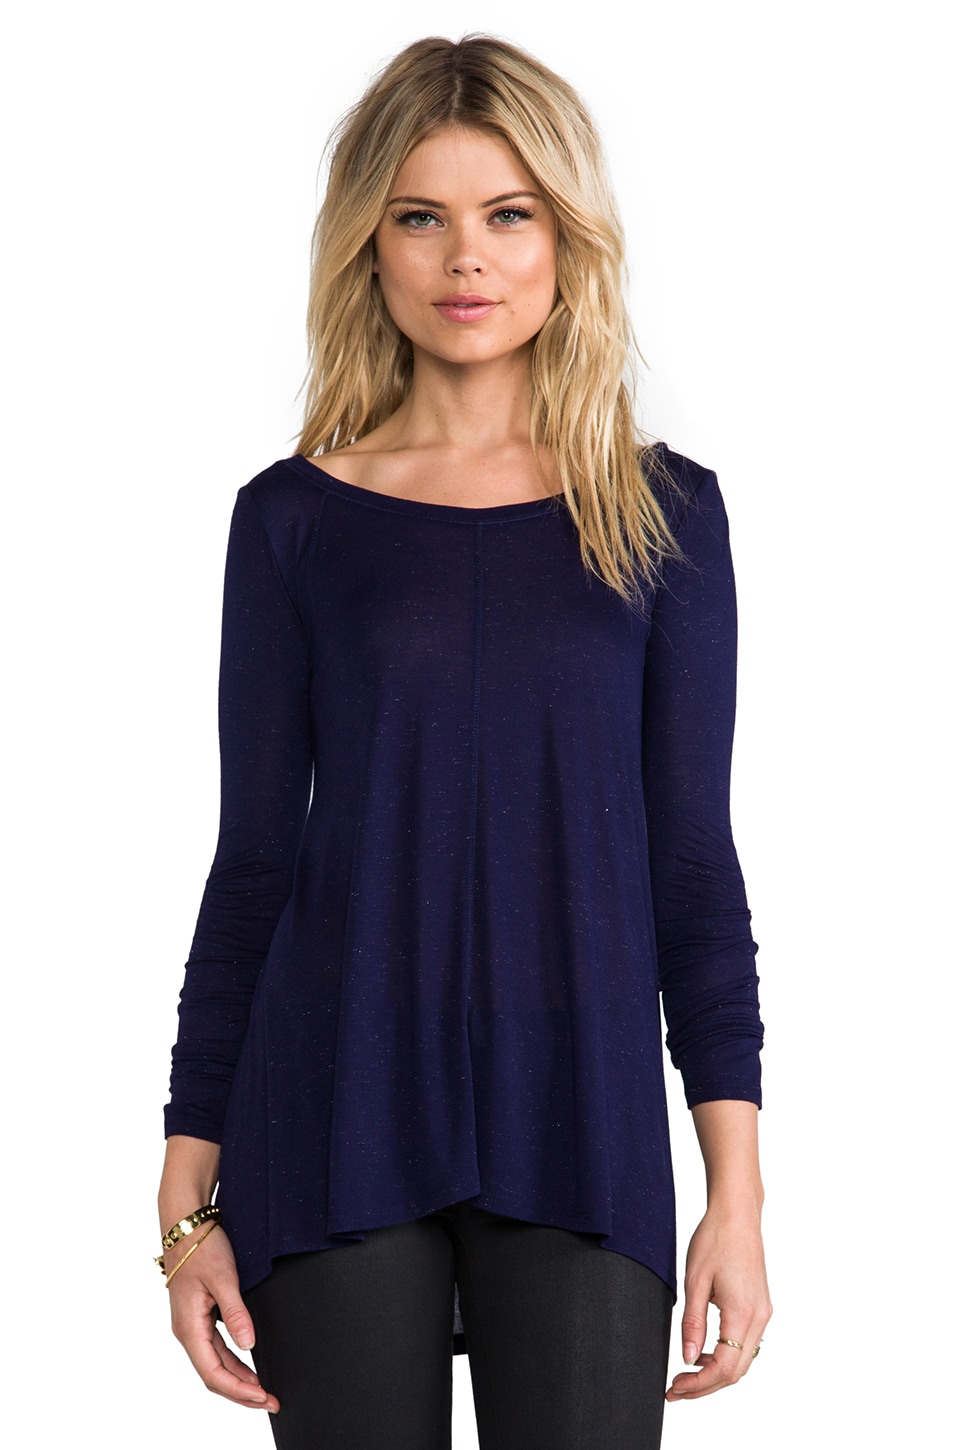 Nation LTD Gennessee Top in Navy